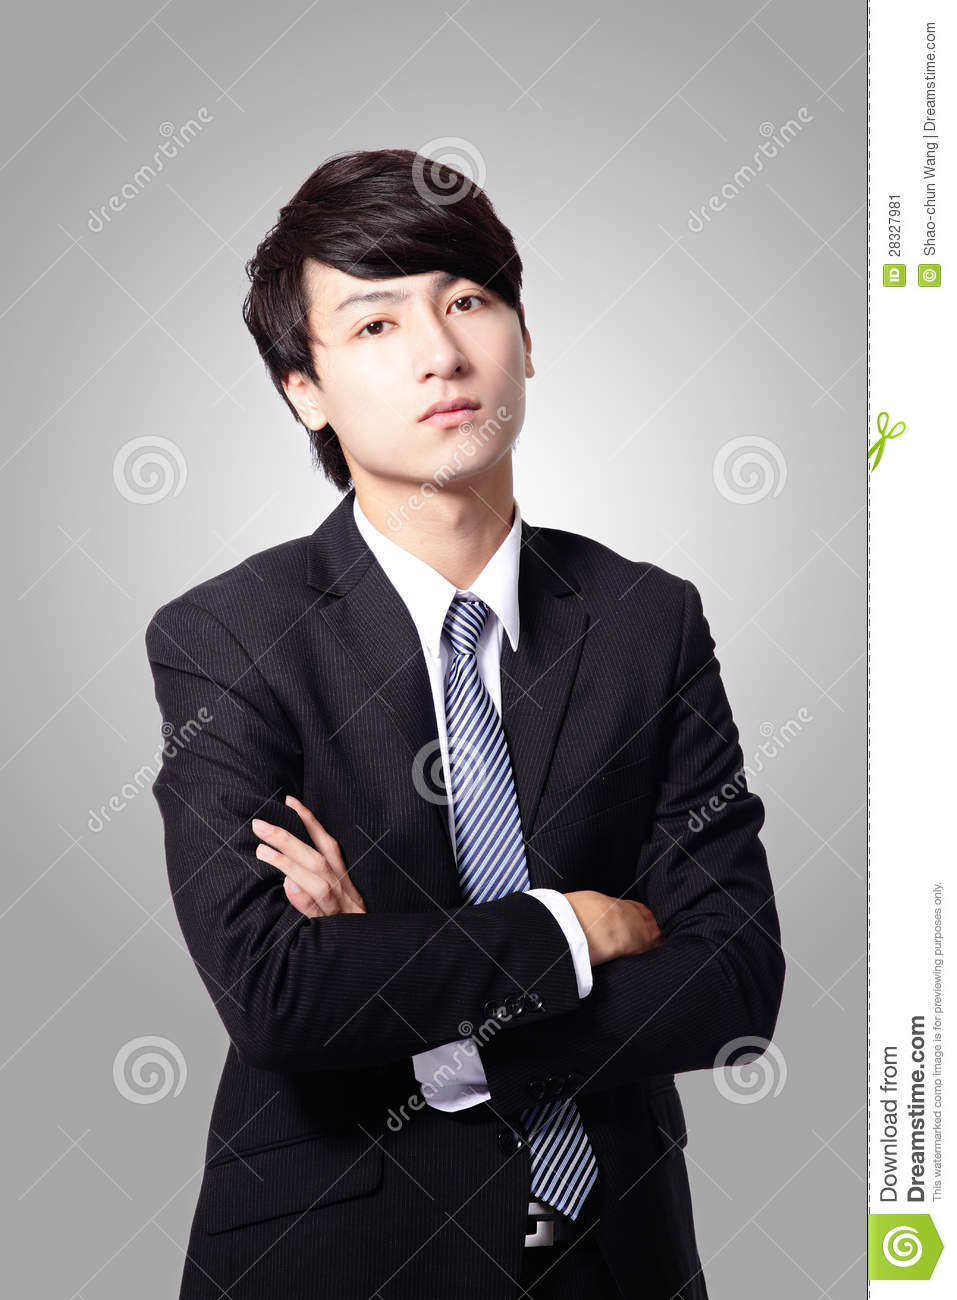 Confident Business Man Cross His Arms Stock Image - Image